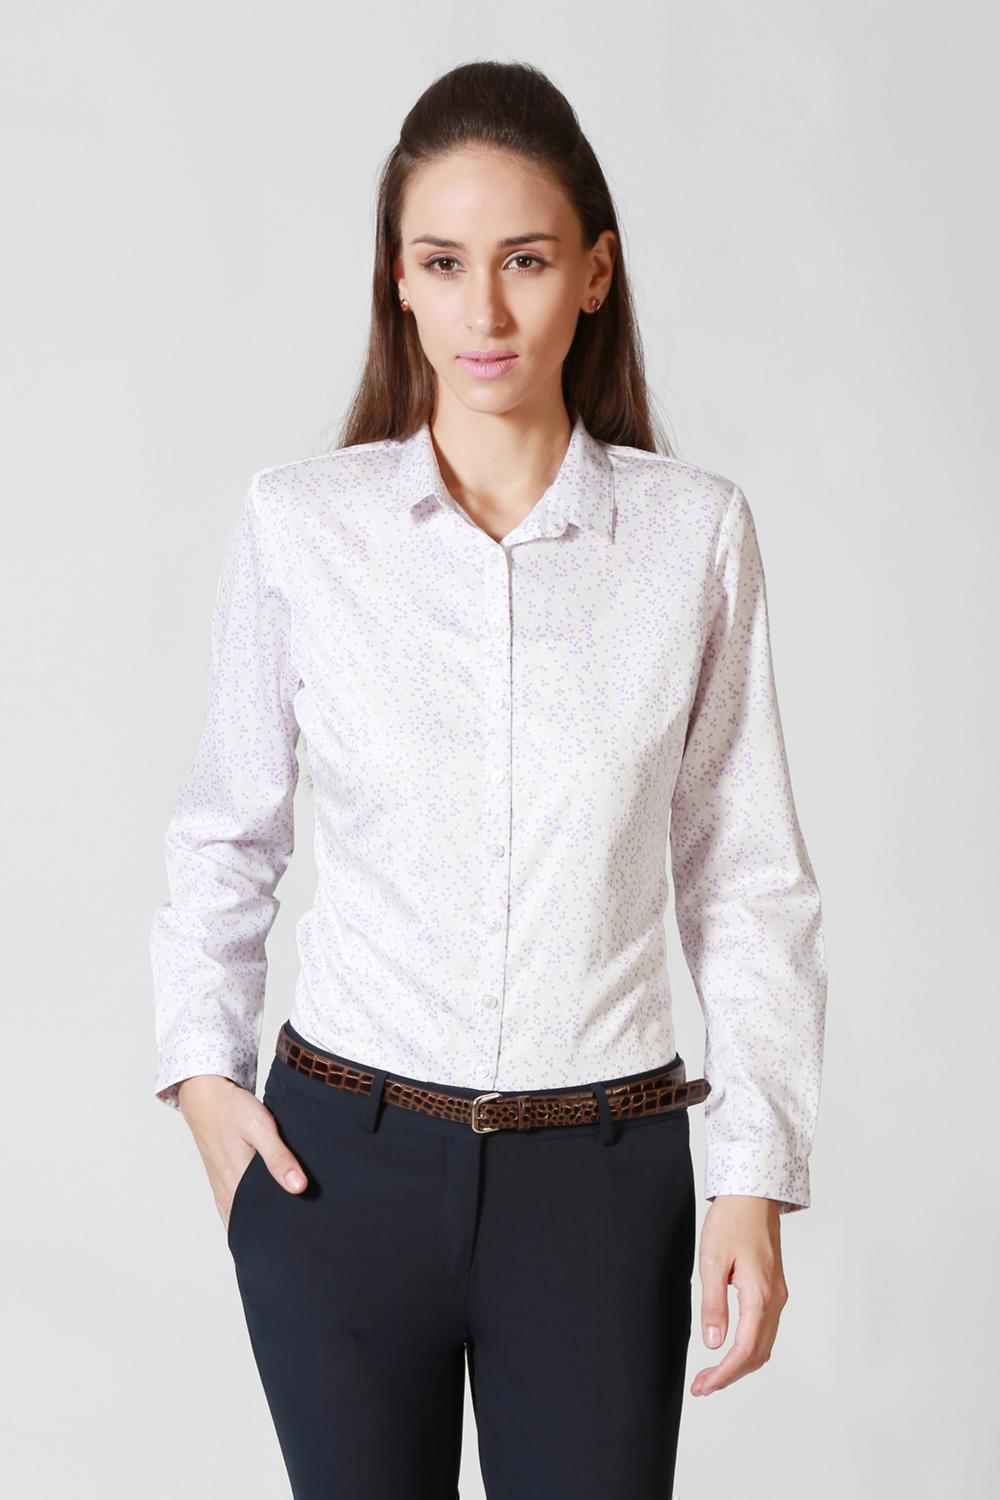 5ac835c7d3941 Solly Shirts & Blouses, Allen Solly White Shirt for Women at Allensolly.com